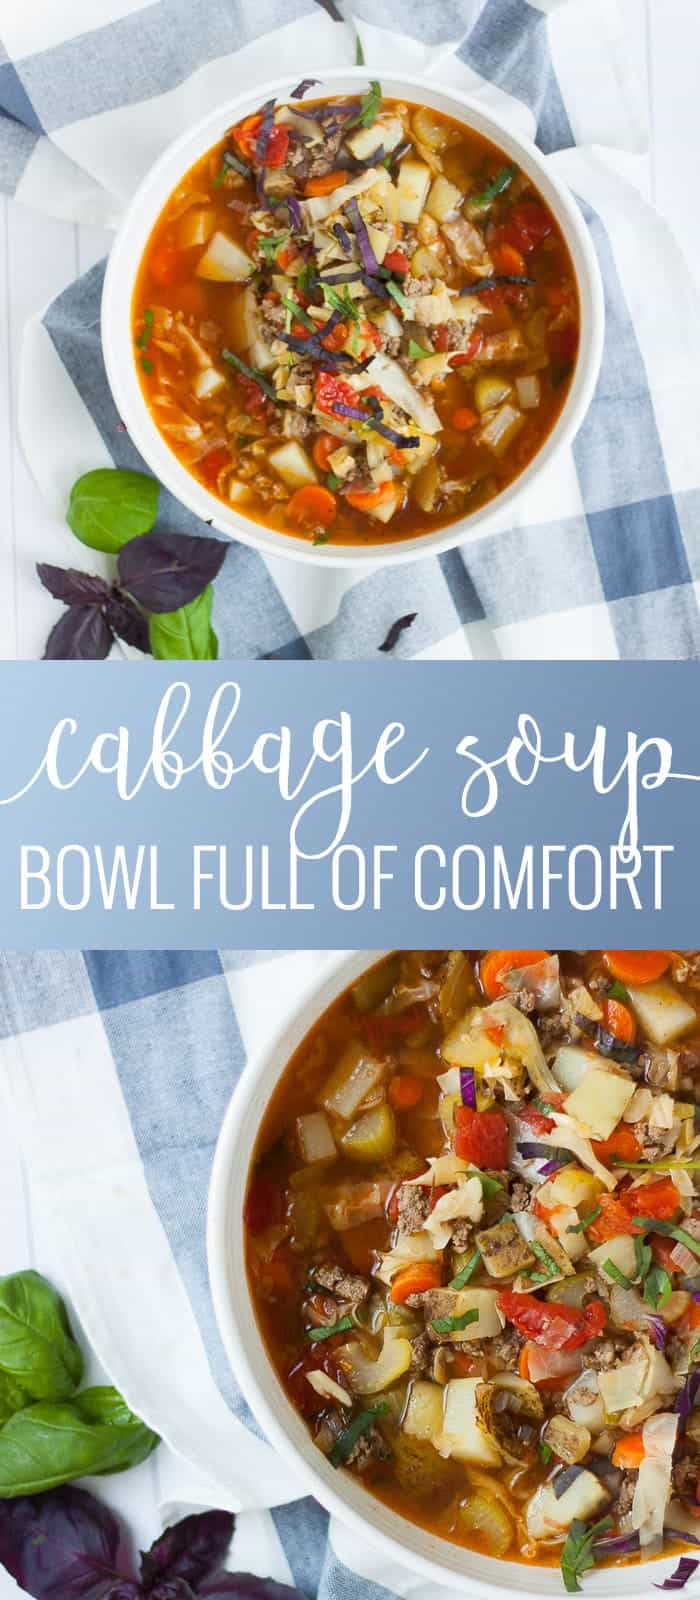 Cabbage Soup | comfort food recipes | homemade soup recipes | cabbage recipe ideas | cold weather soup recipes || Oh So Delicioso #cabbagesoup #souprecipes